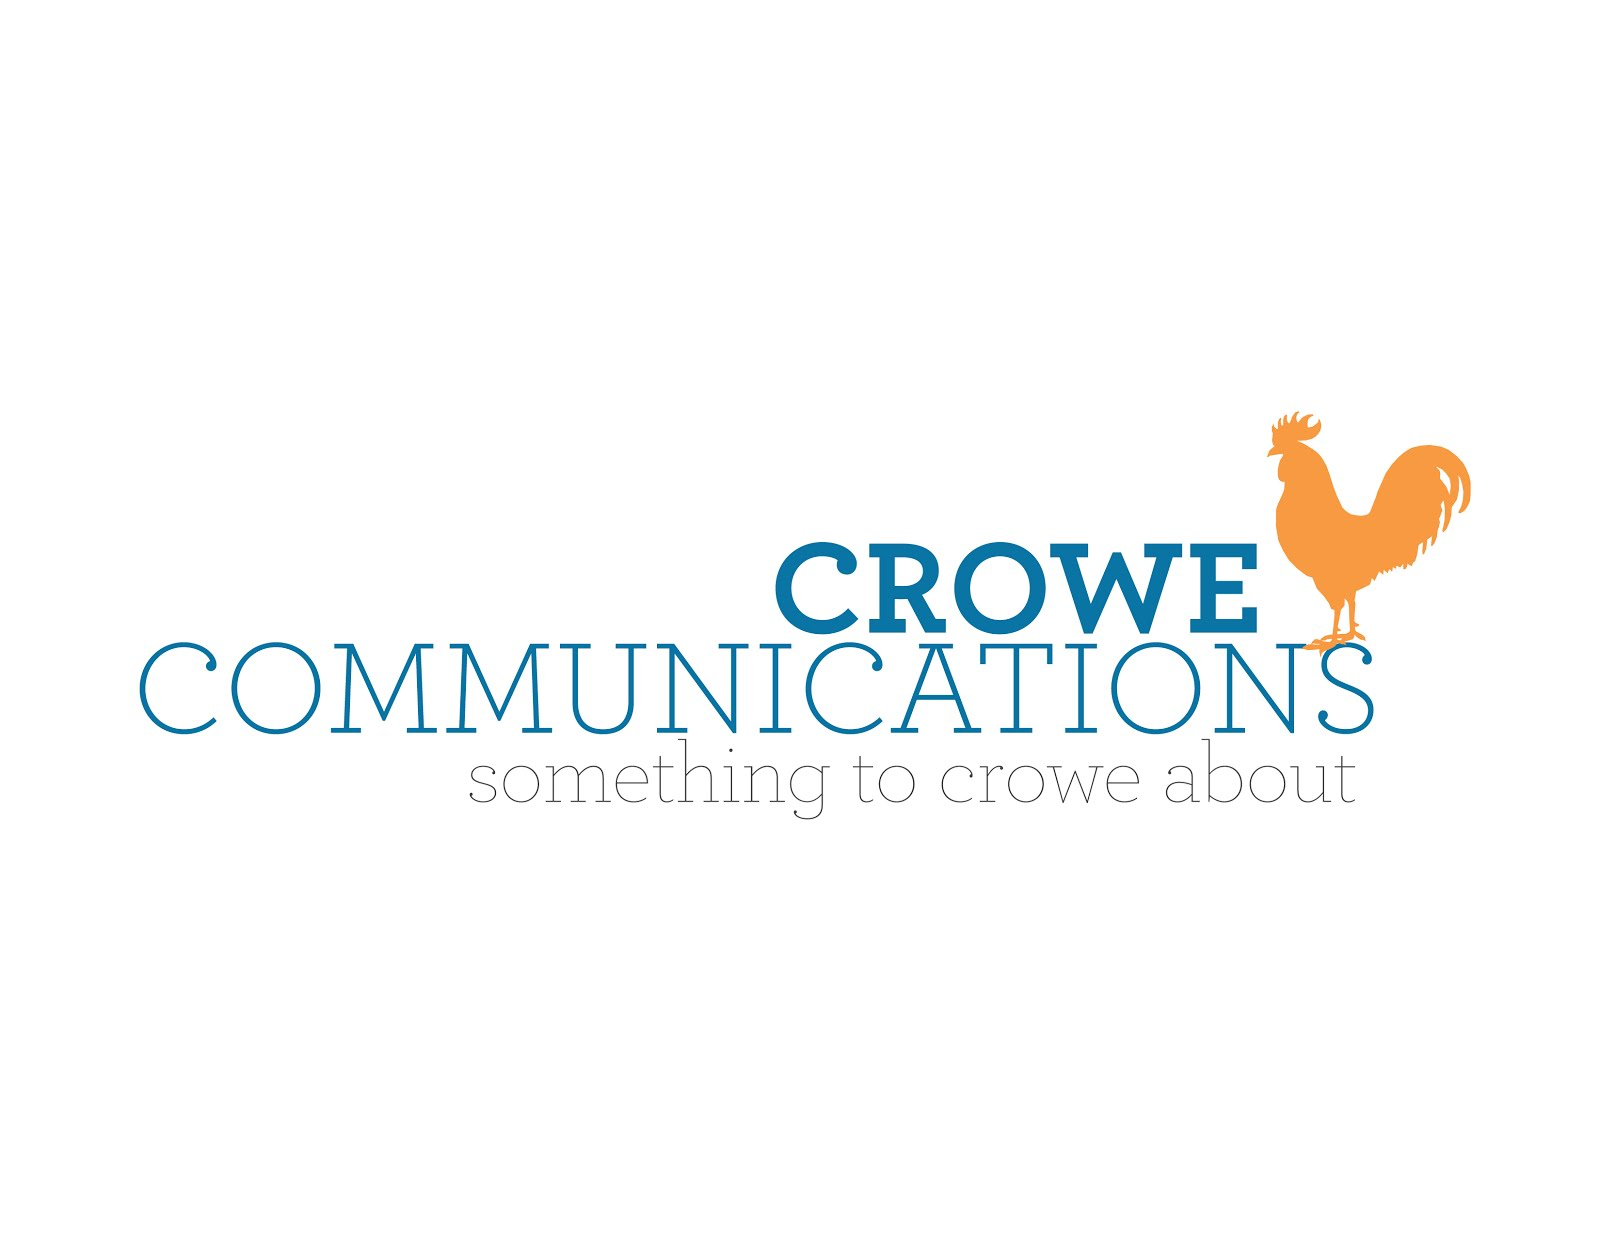 CROWE COMMUNICATIONS